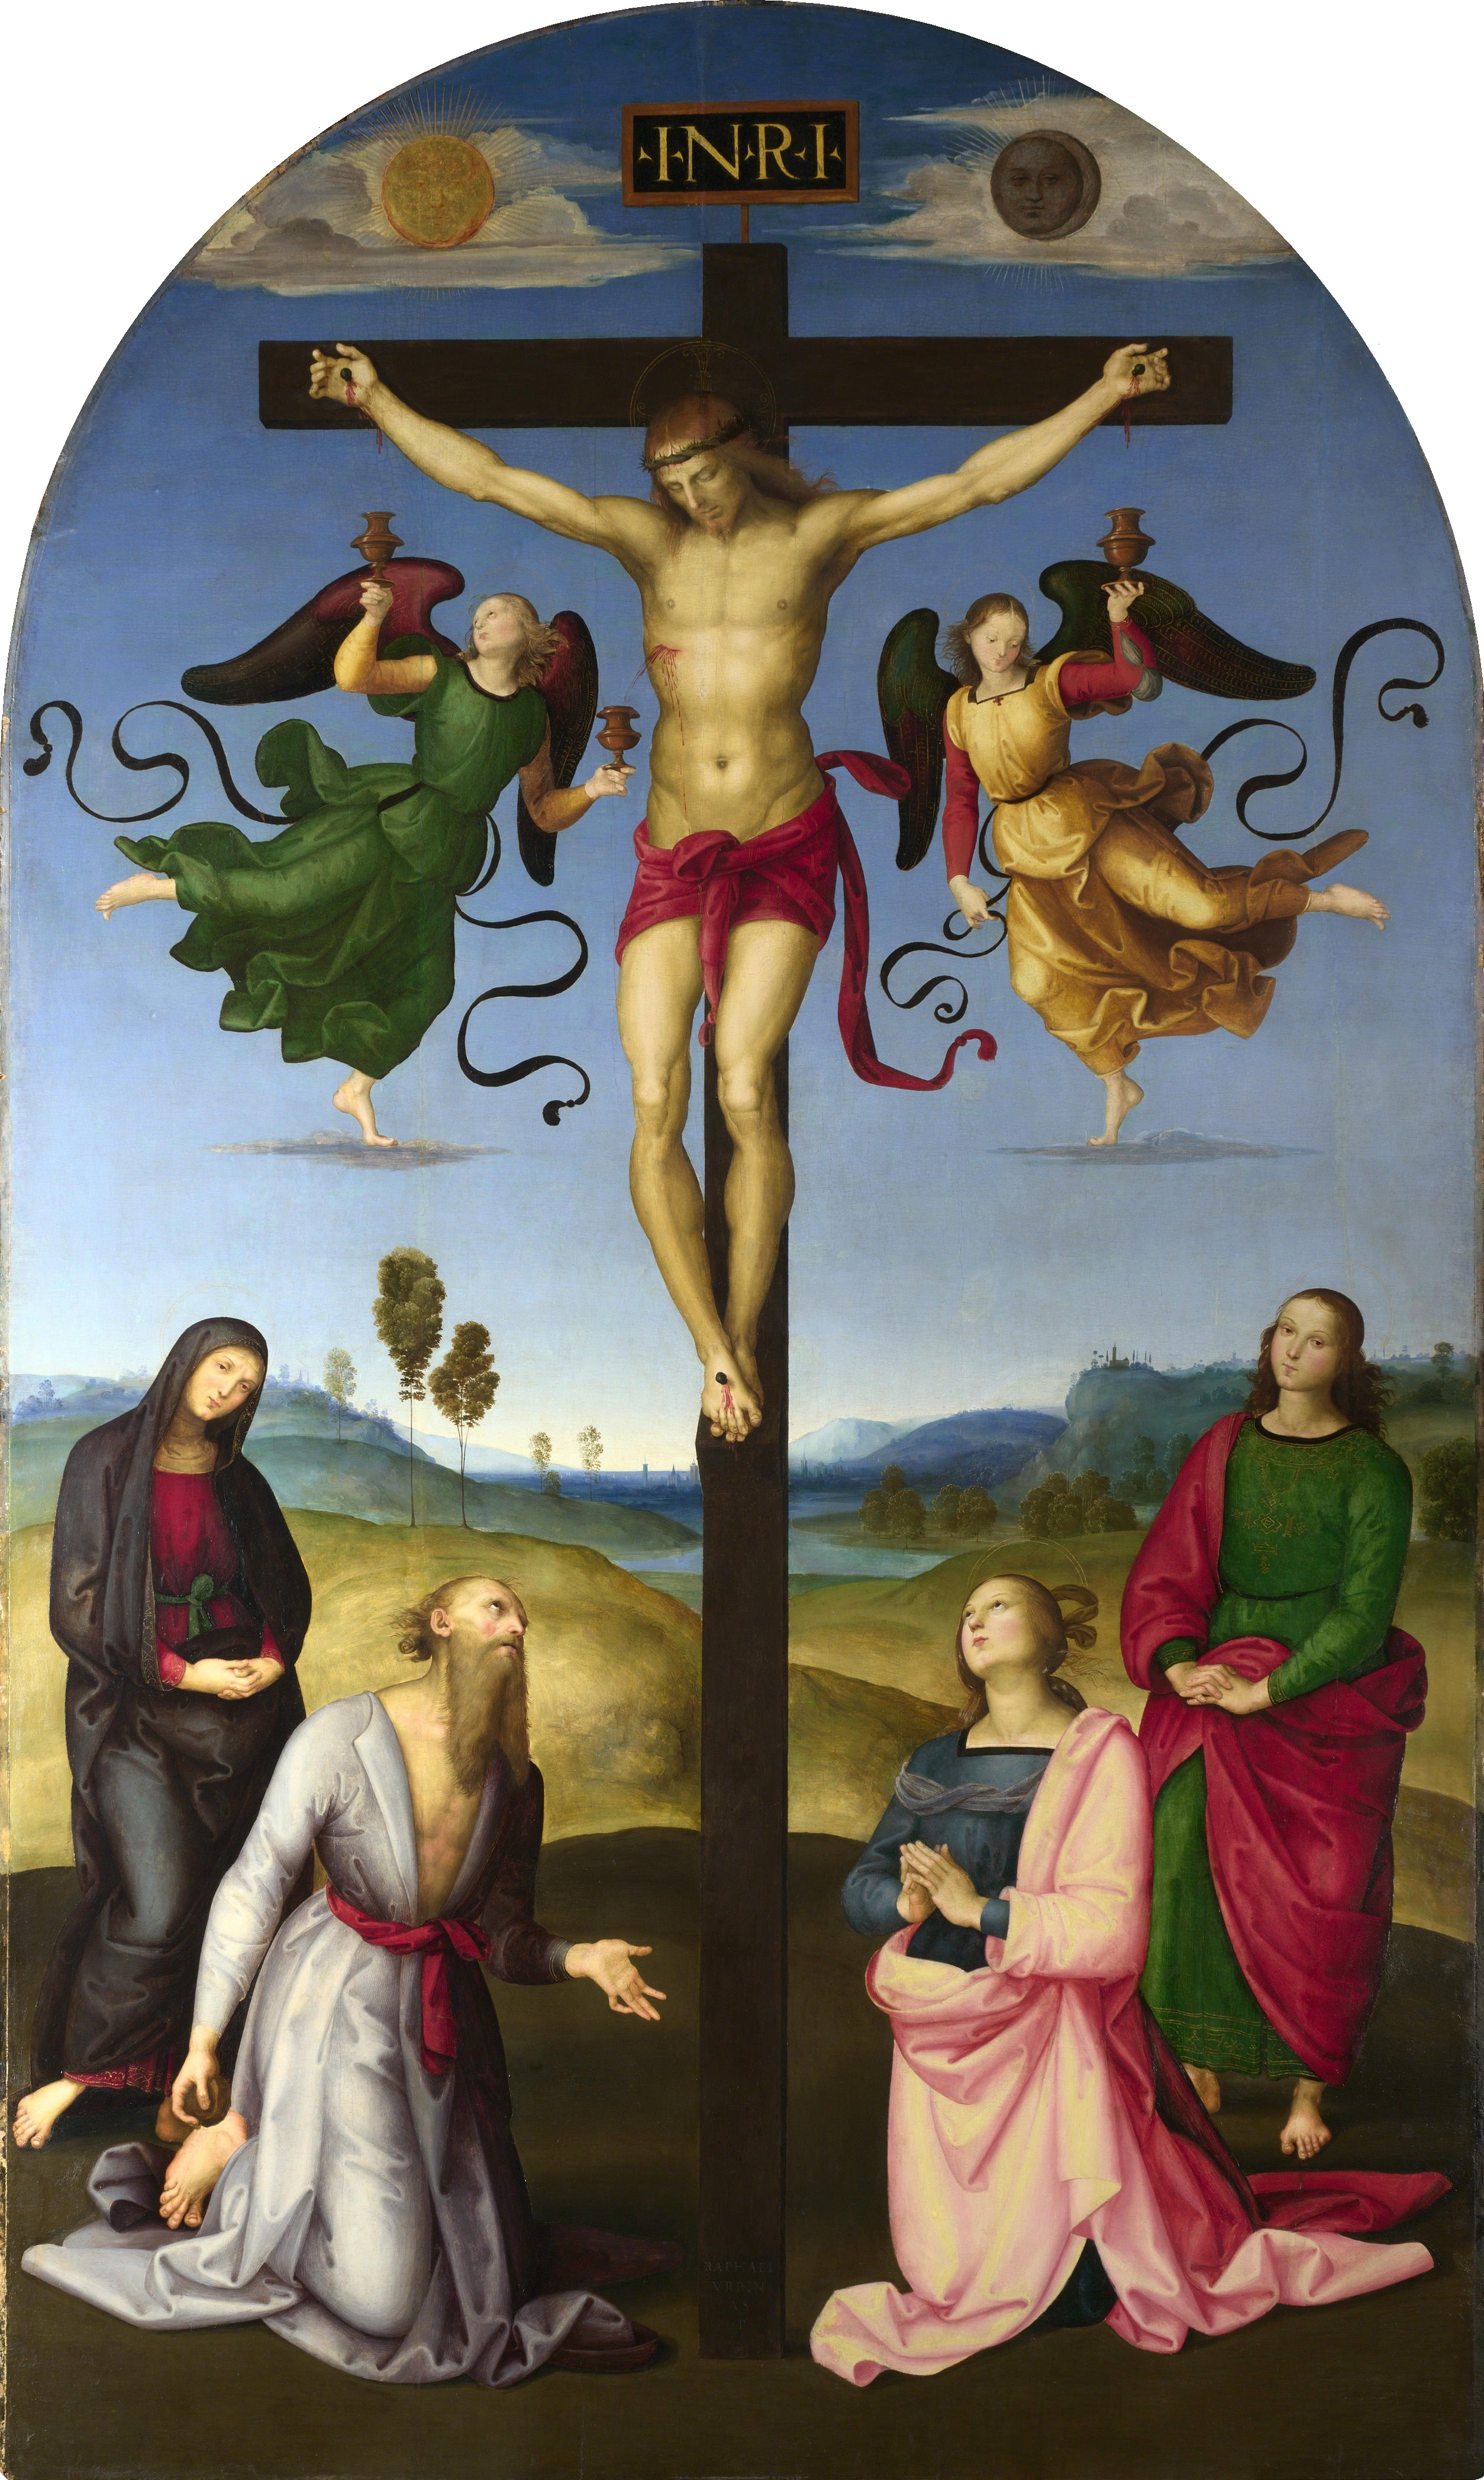 the Mond Crucifixion by Raphael taken from Wikipedia